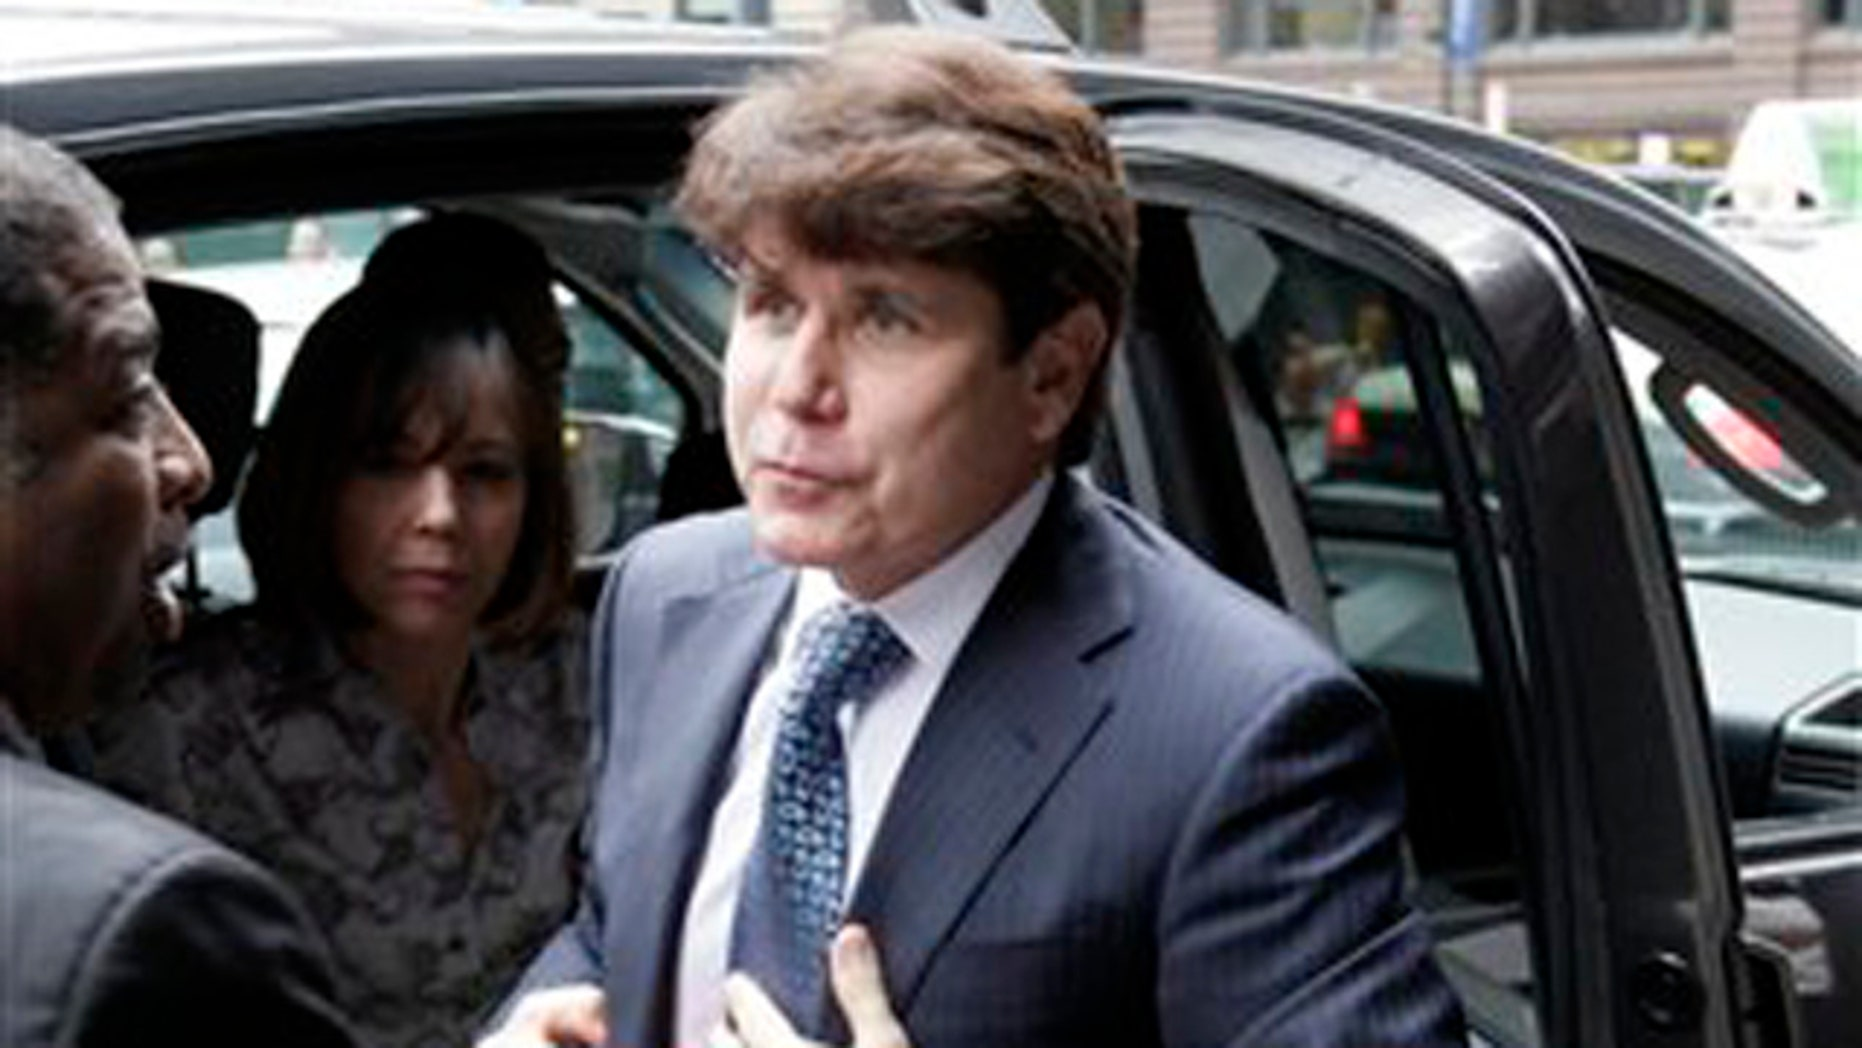 Aug. 17, 2010: Former Illinois Gov. Rod Blagojevich and his wife Patti arrive at the Federal Court building.